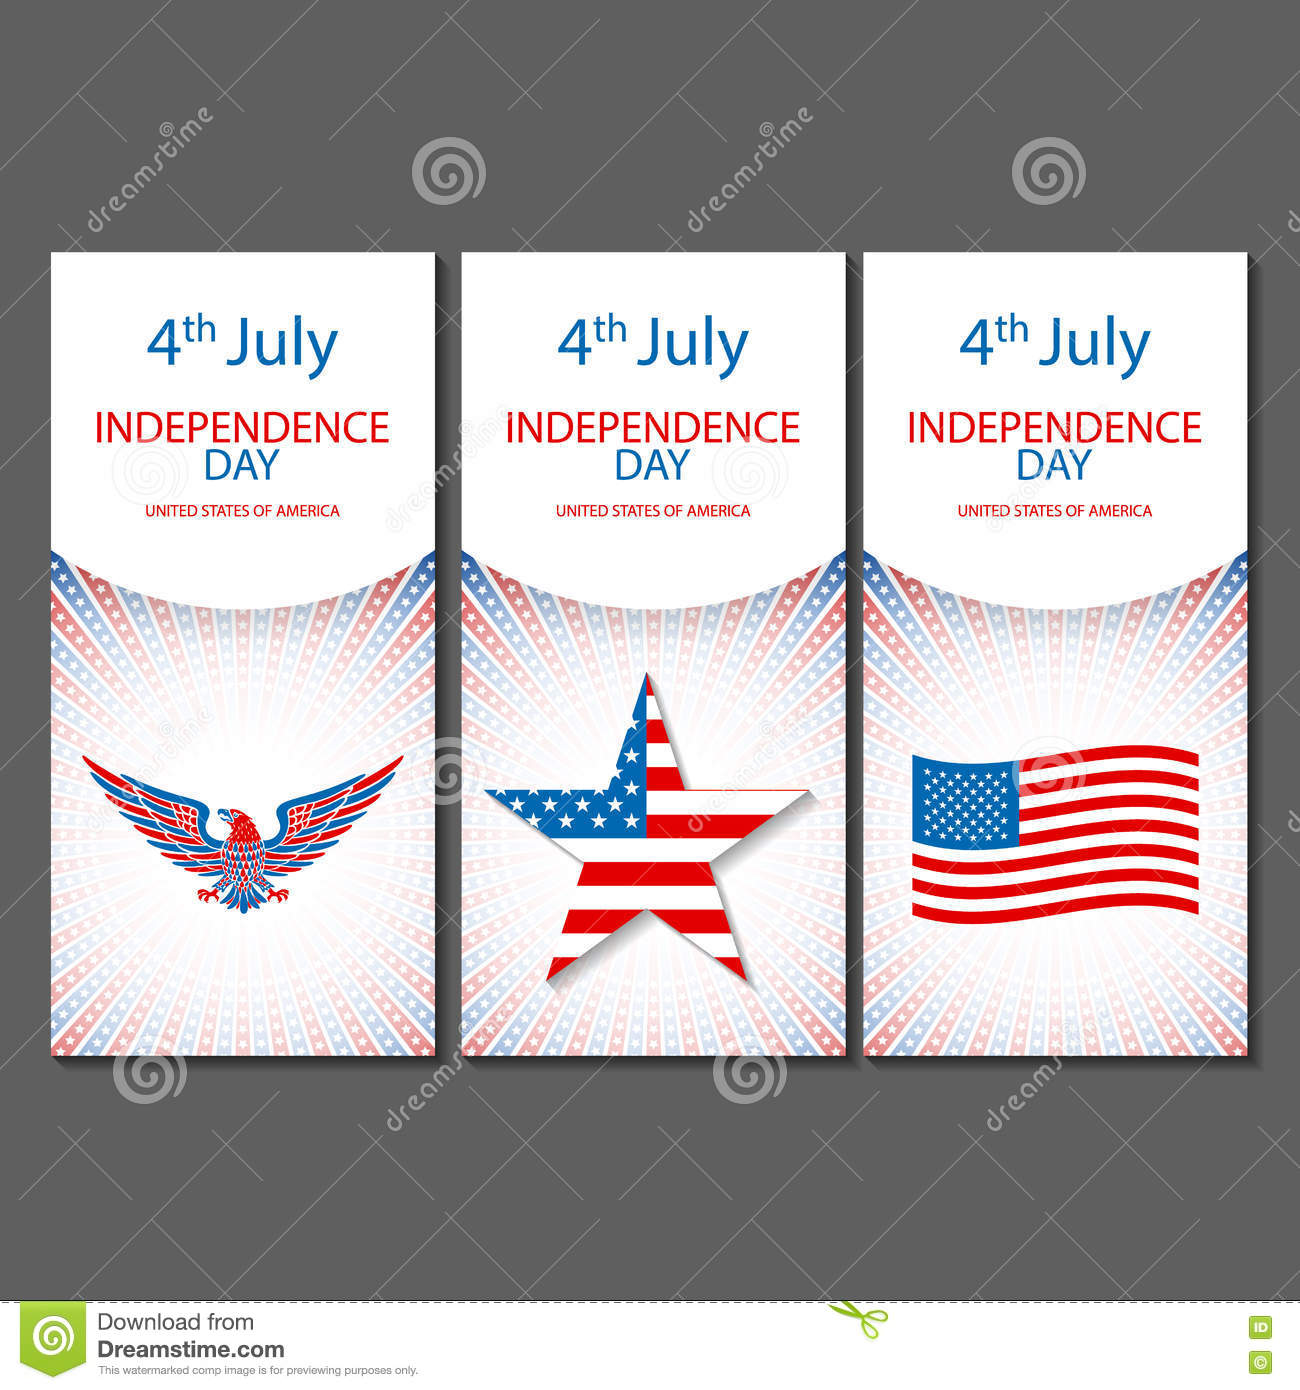 banners of 4th july backgrounds with american flag independence day hand drawn sketch design vector